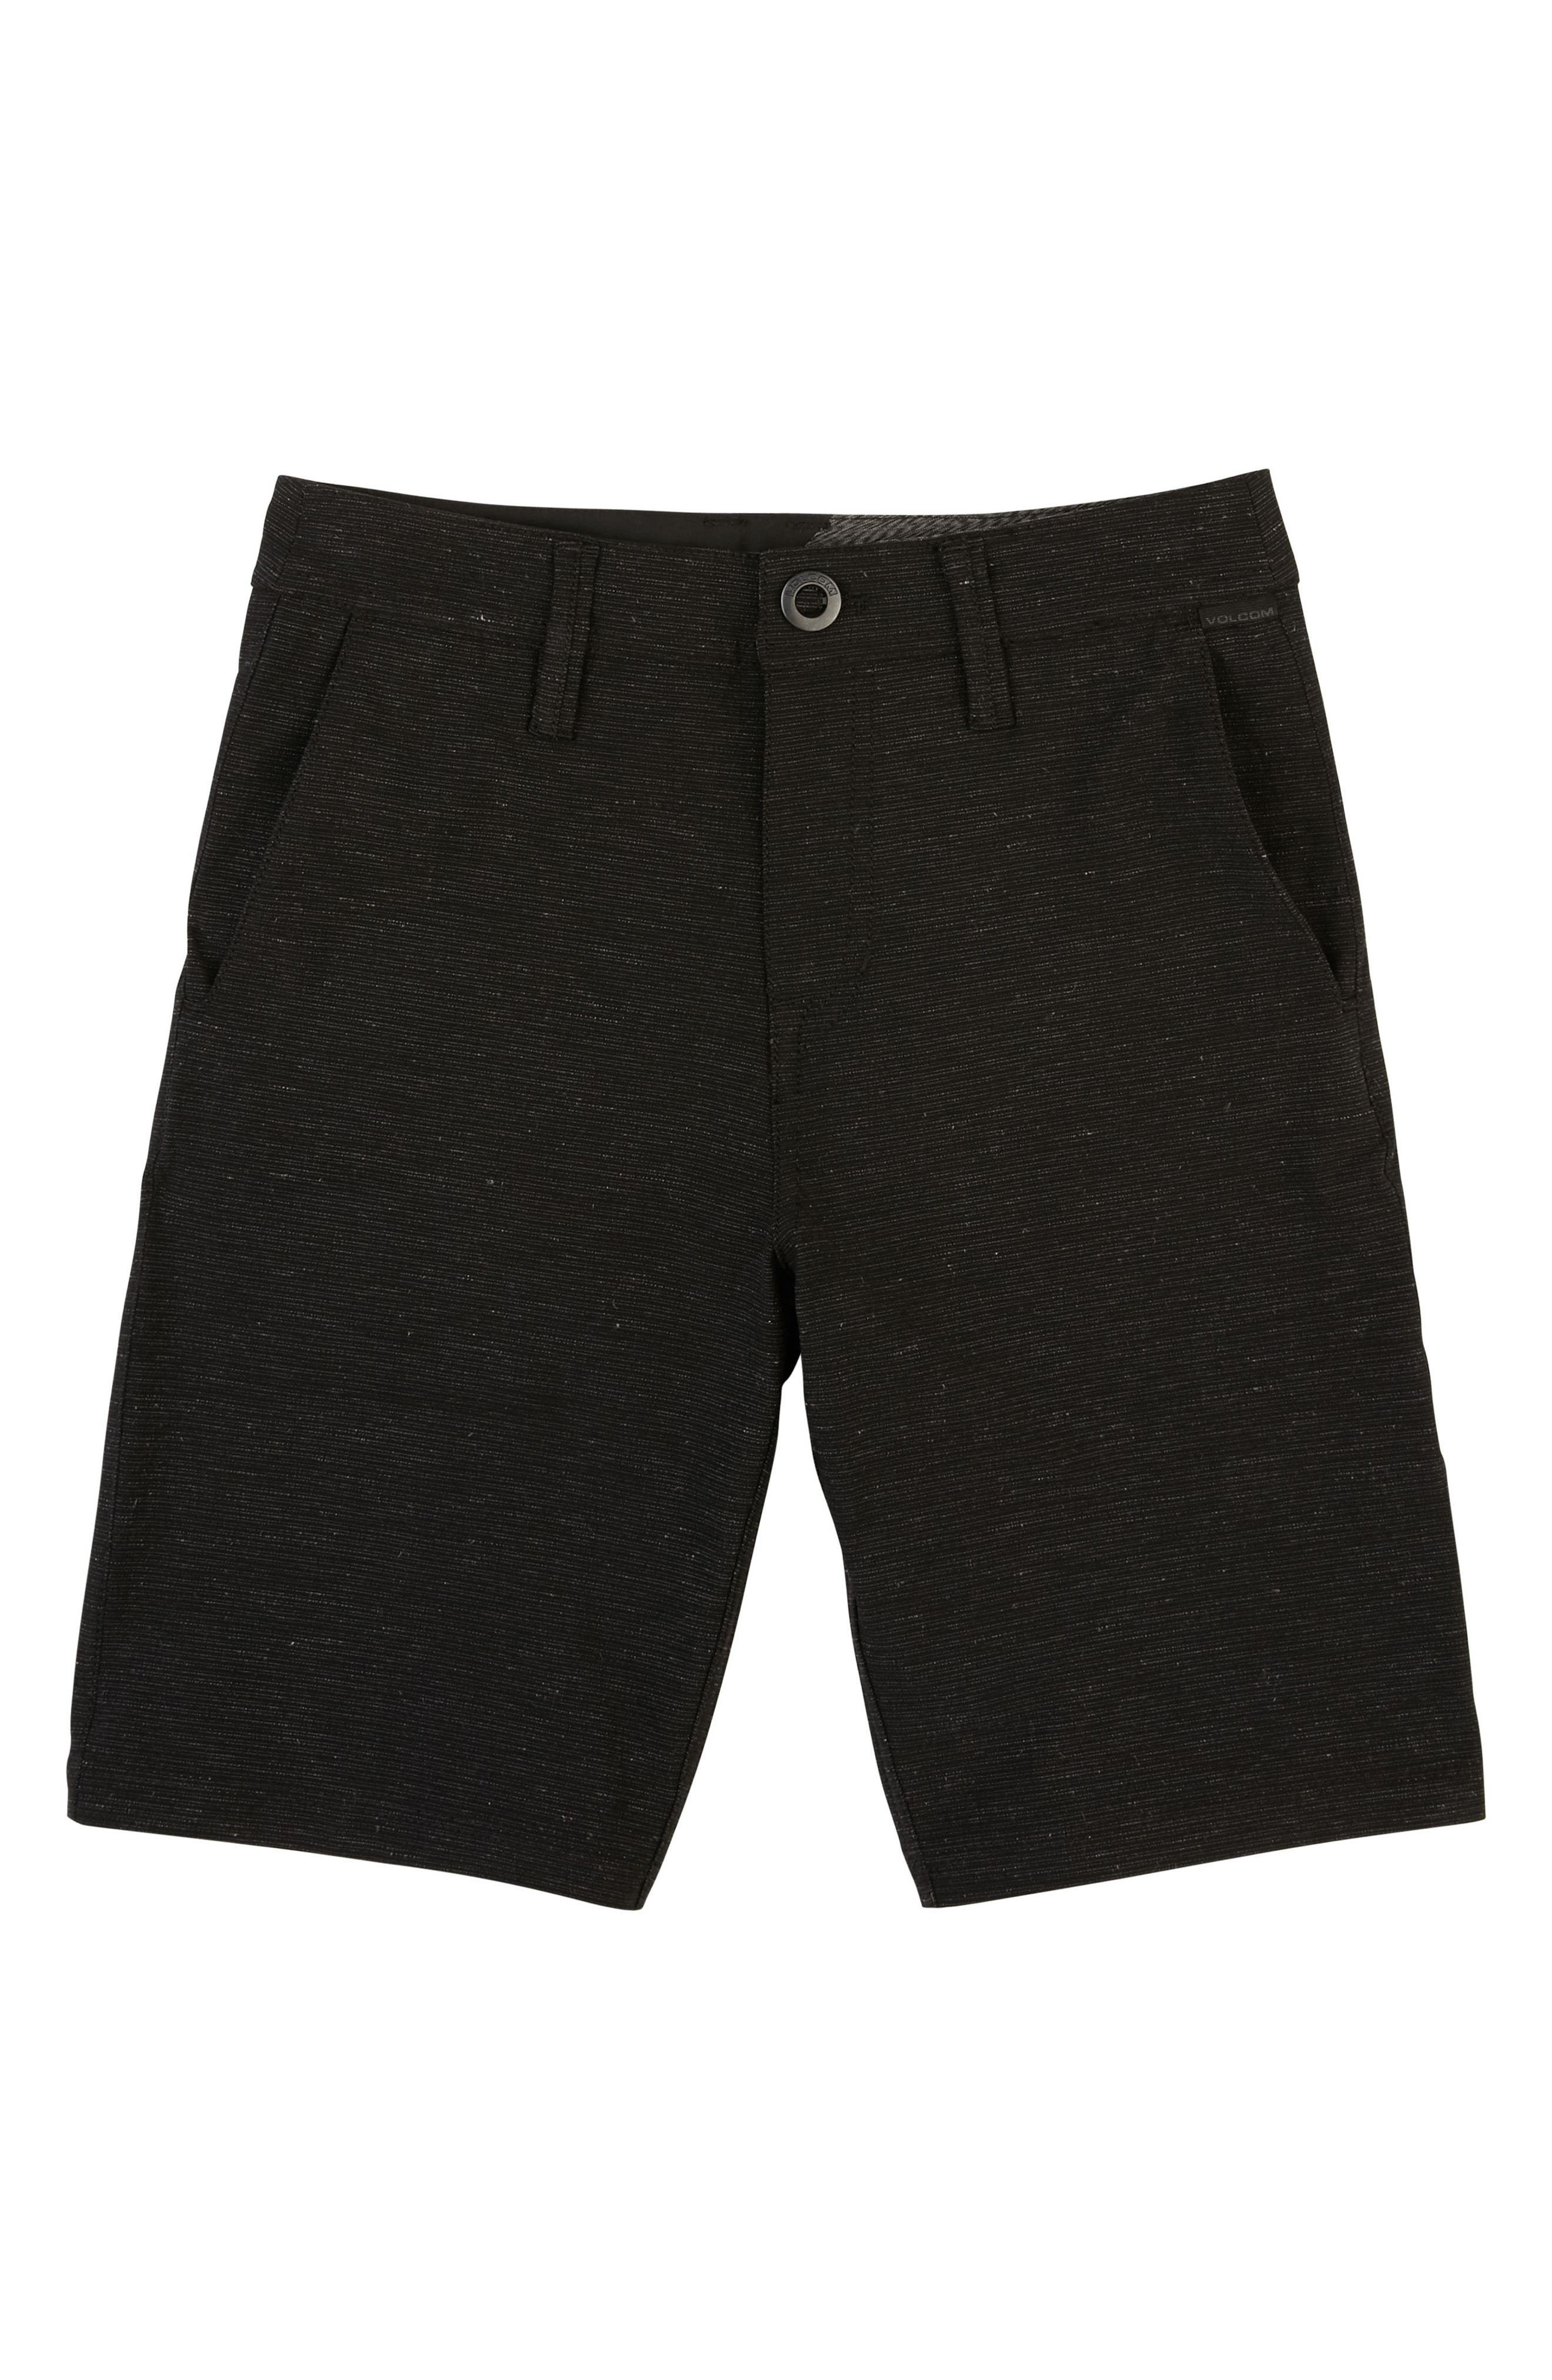 Surf N' Turf Slub Hybrid Shorts,                         Main,                         color, Black